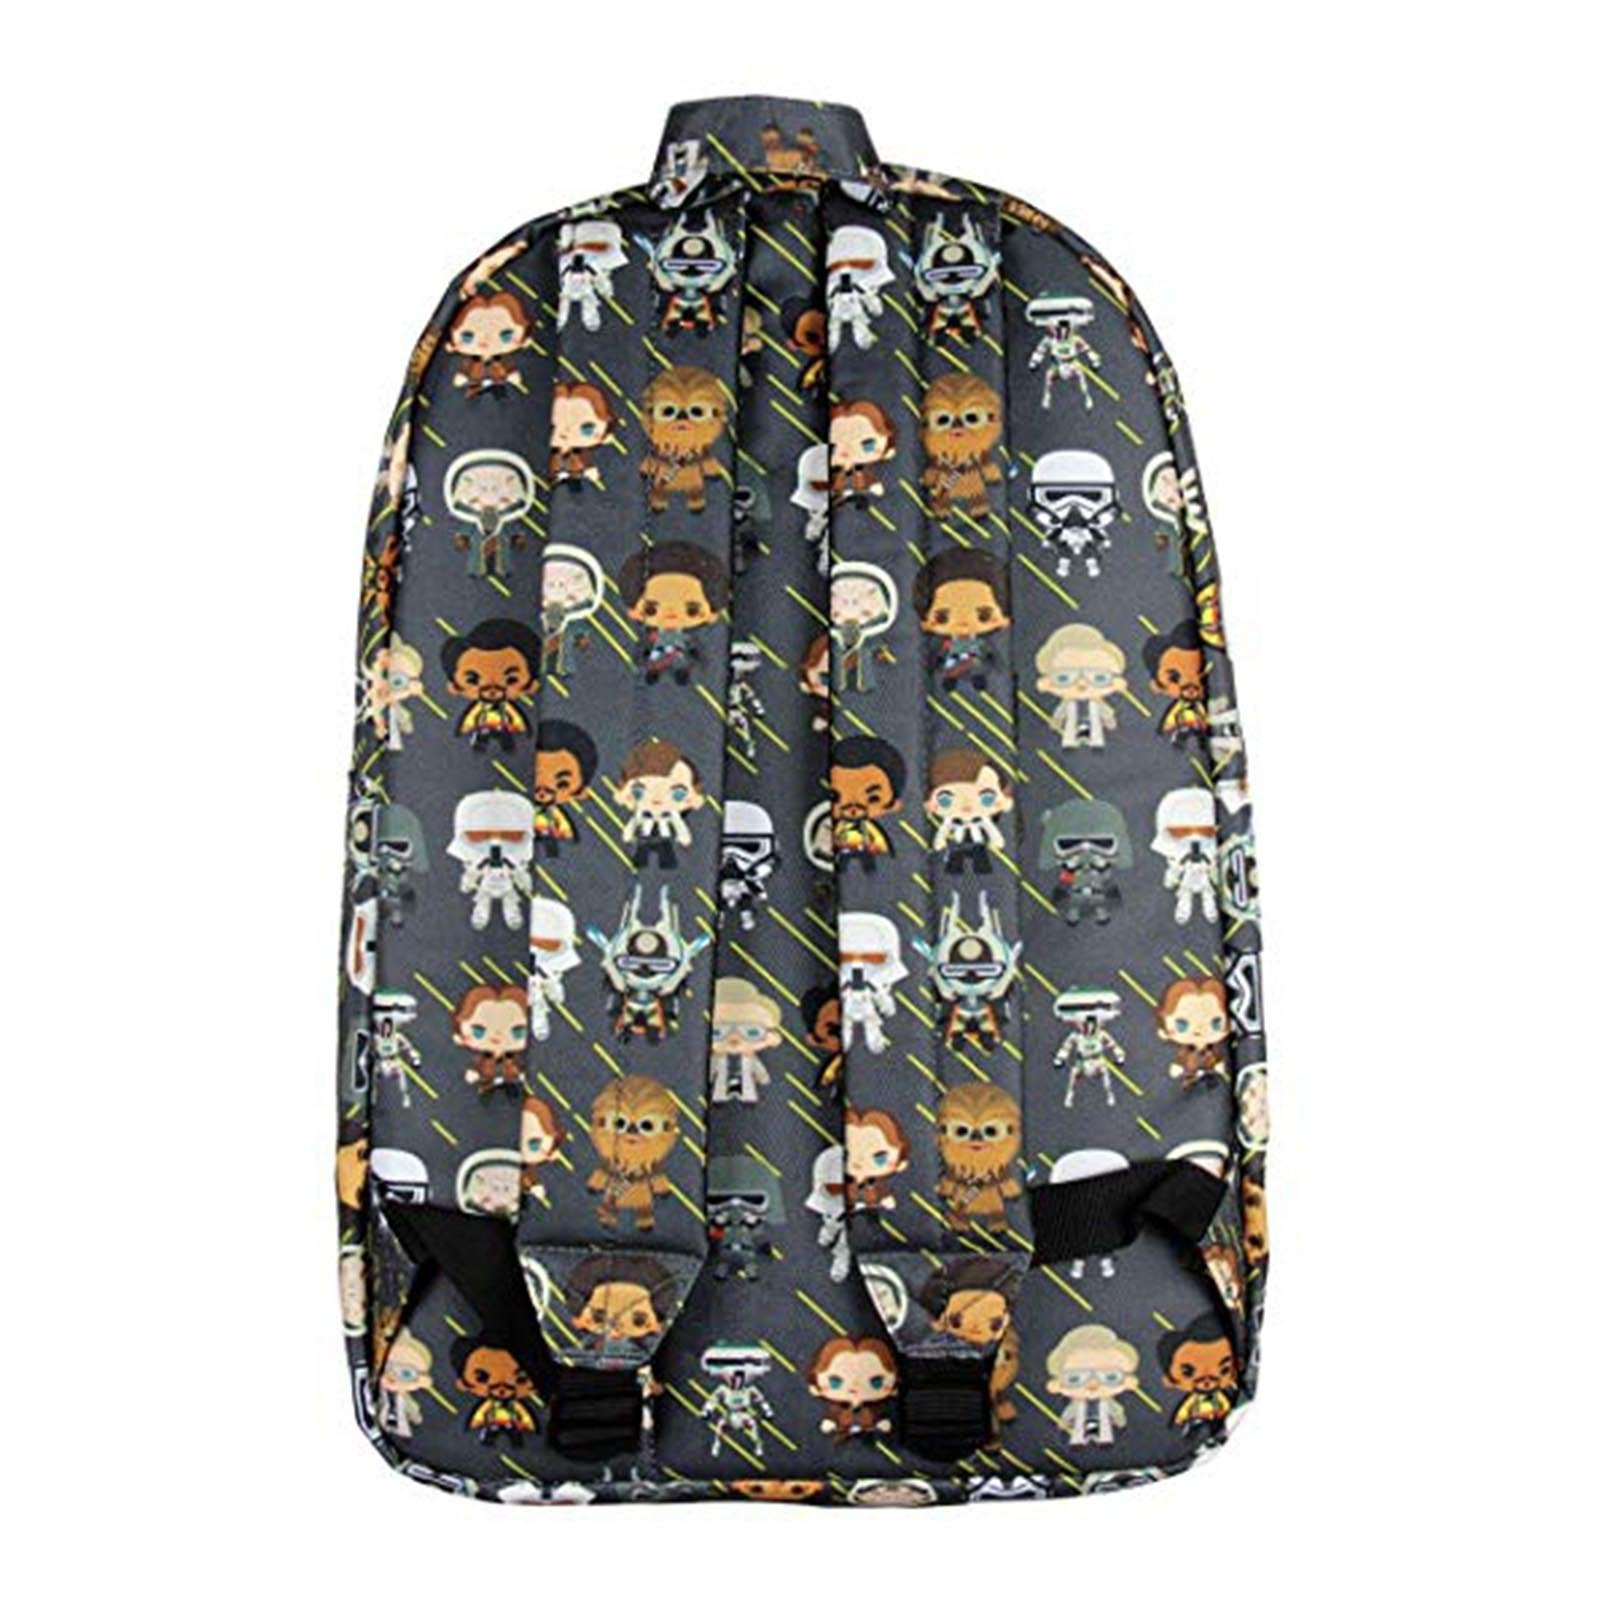 3f416257fc5 Loungefly Star Wars Character All Over Print Chibi Backpack